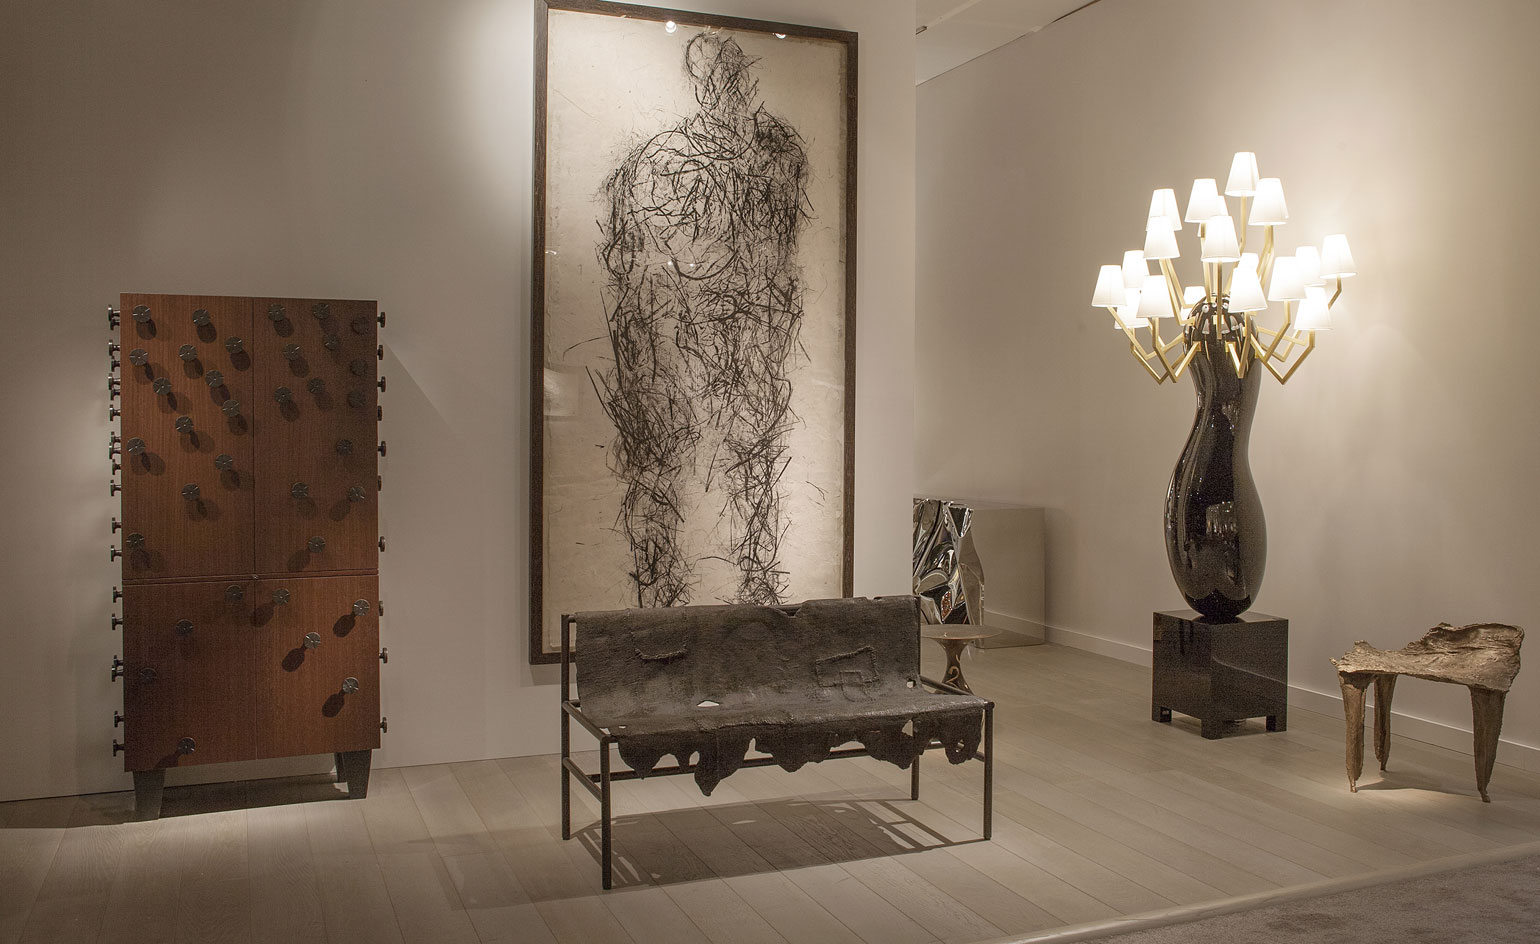 Get Ready for the Exceptional Salon Art + Design NY 2018 - David Gill Gallery salon art + design Get Ready for the Exceptional Salon Art + Design NY 2018 Get Ready for the Exceptional Salon Art Design NY 2018 David Gill Gallery